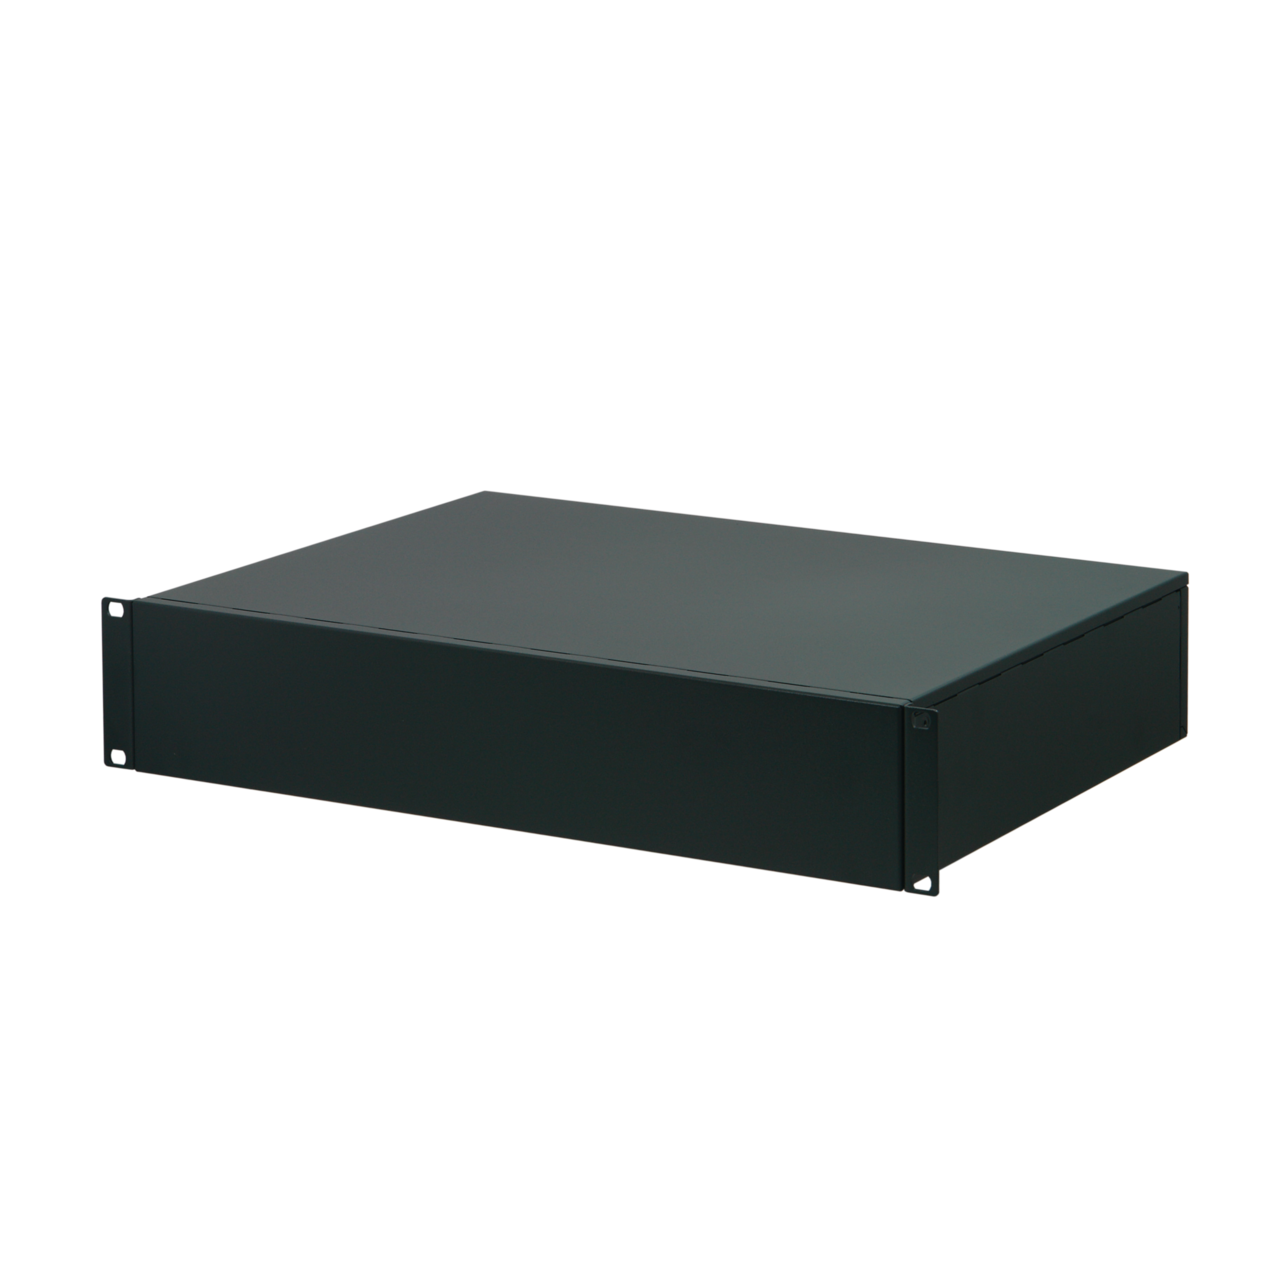 Image for Interscale, 19'' Case, Non-Perforated, Rack Mount from nVent SCHROFF | Europe, Middle East, Africa and India